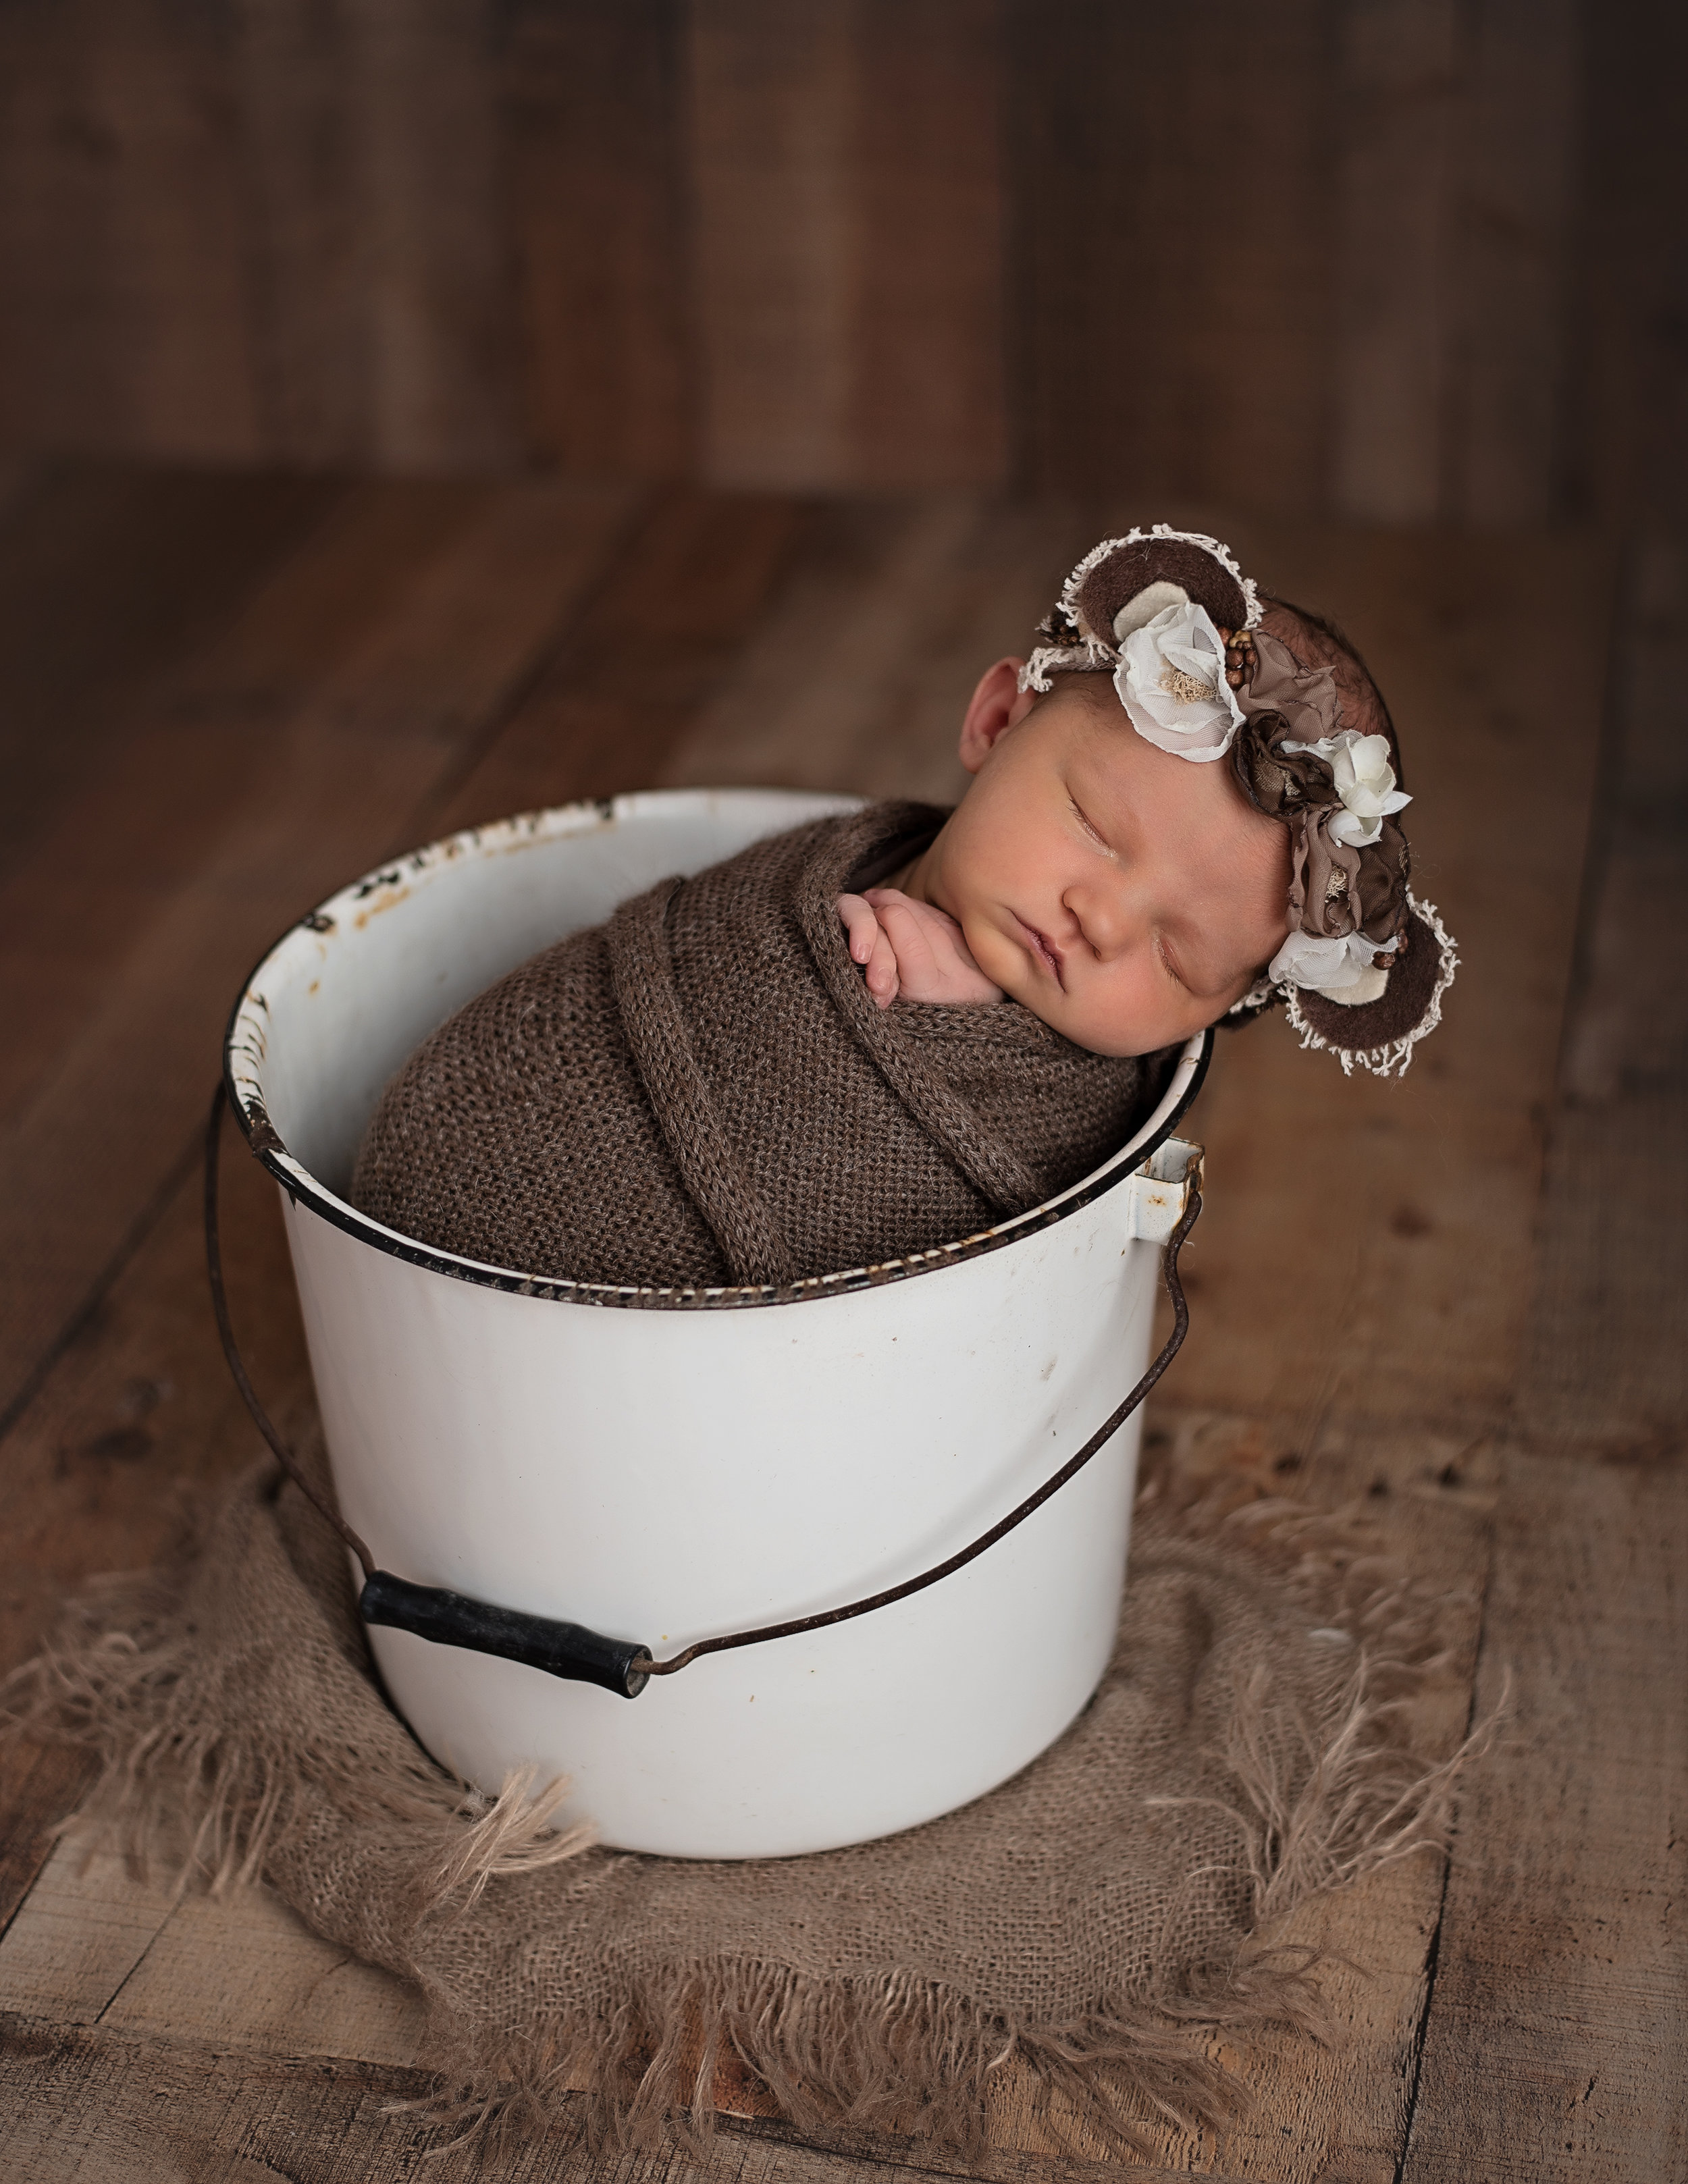 Lonsdale_Newborn_Photographer6 (2).jpg